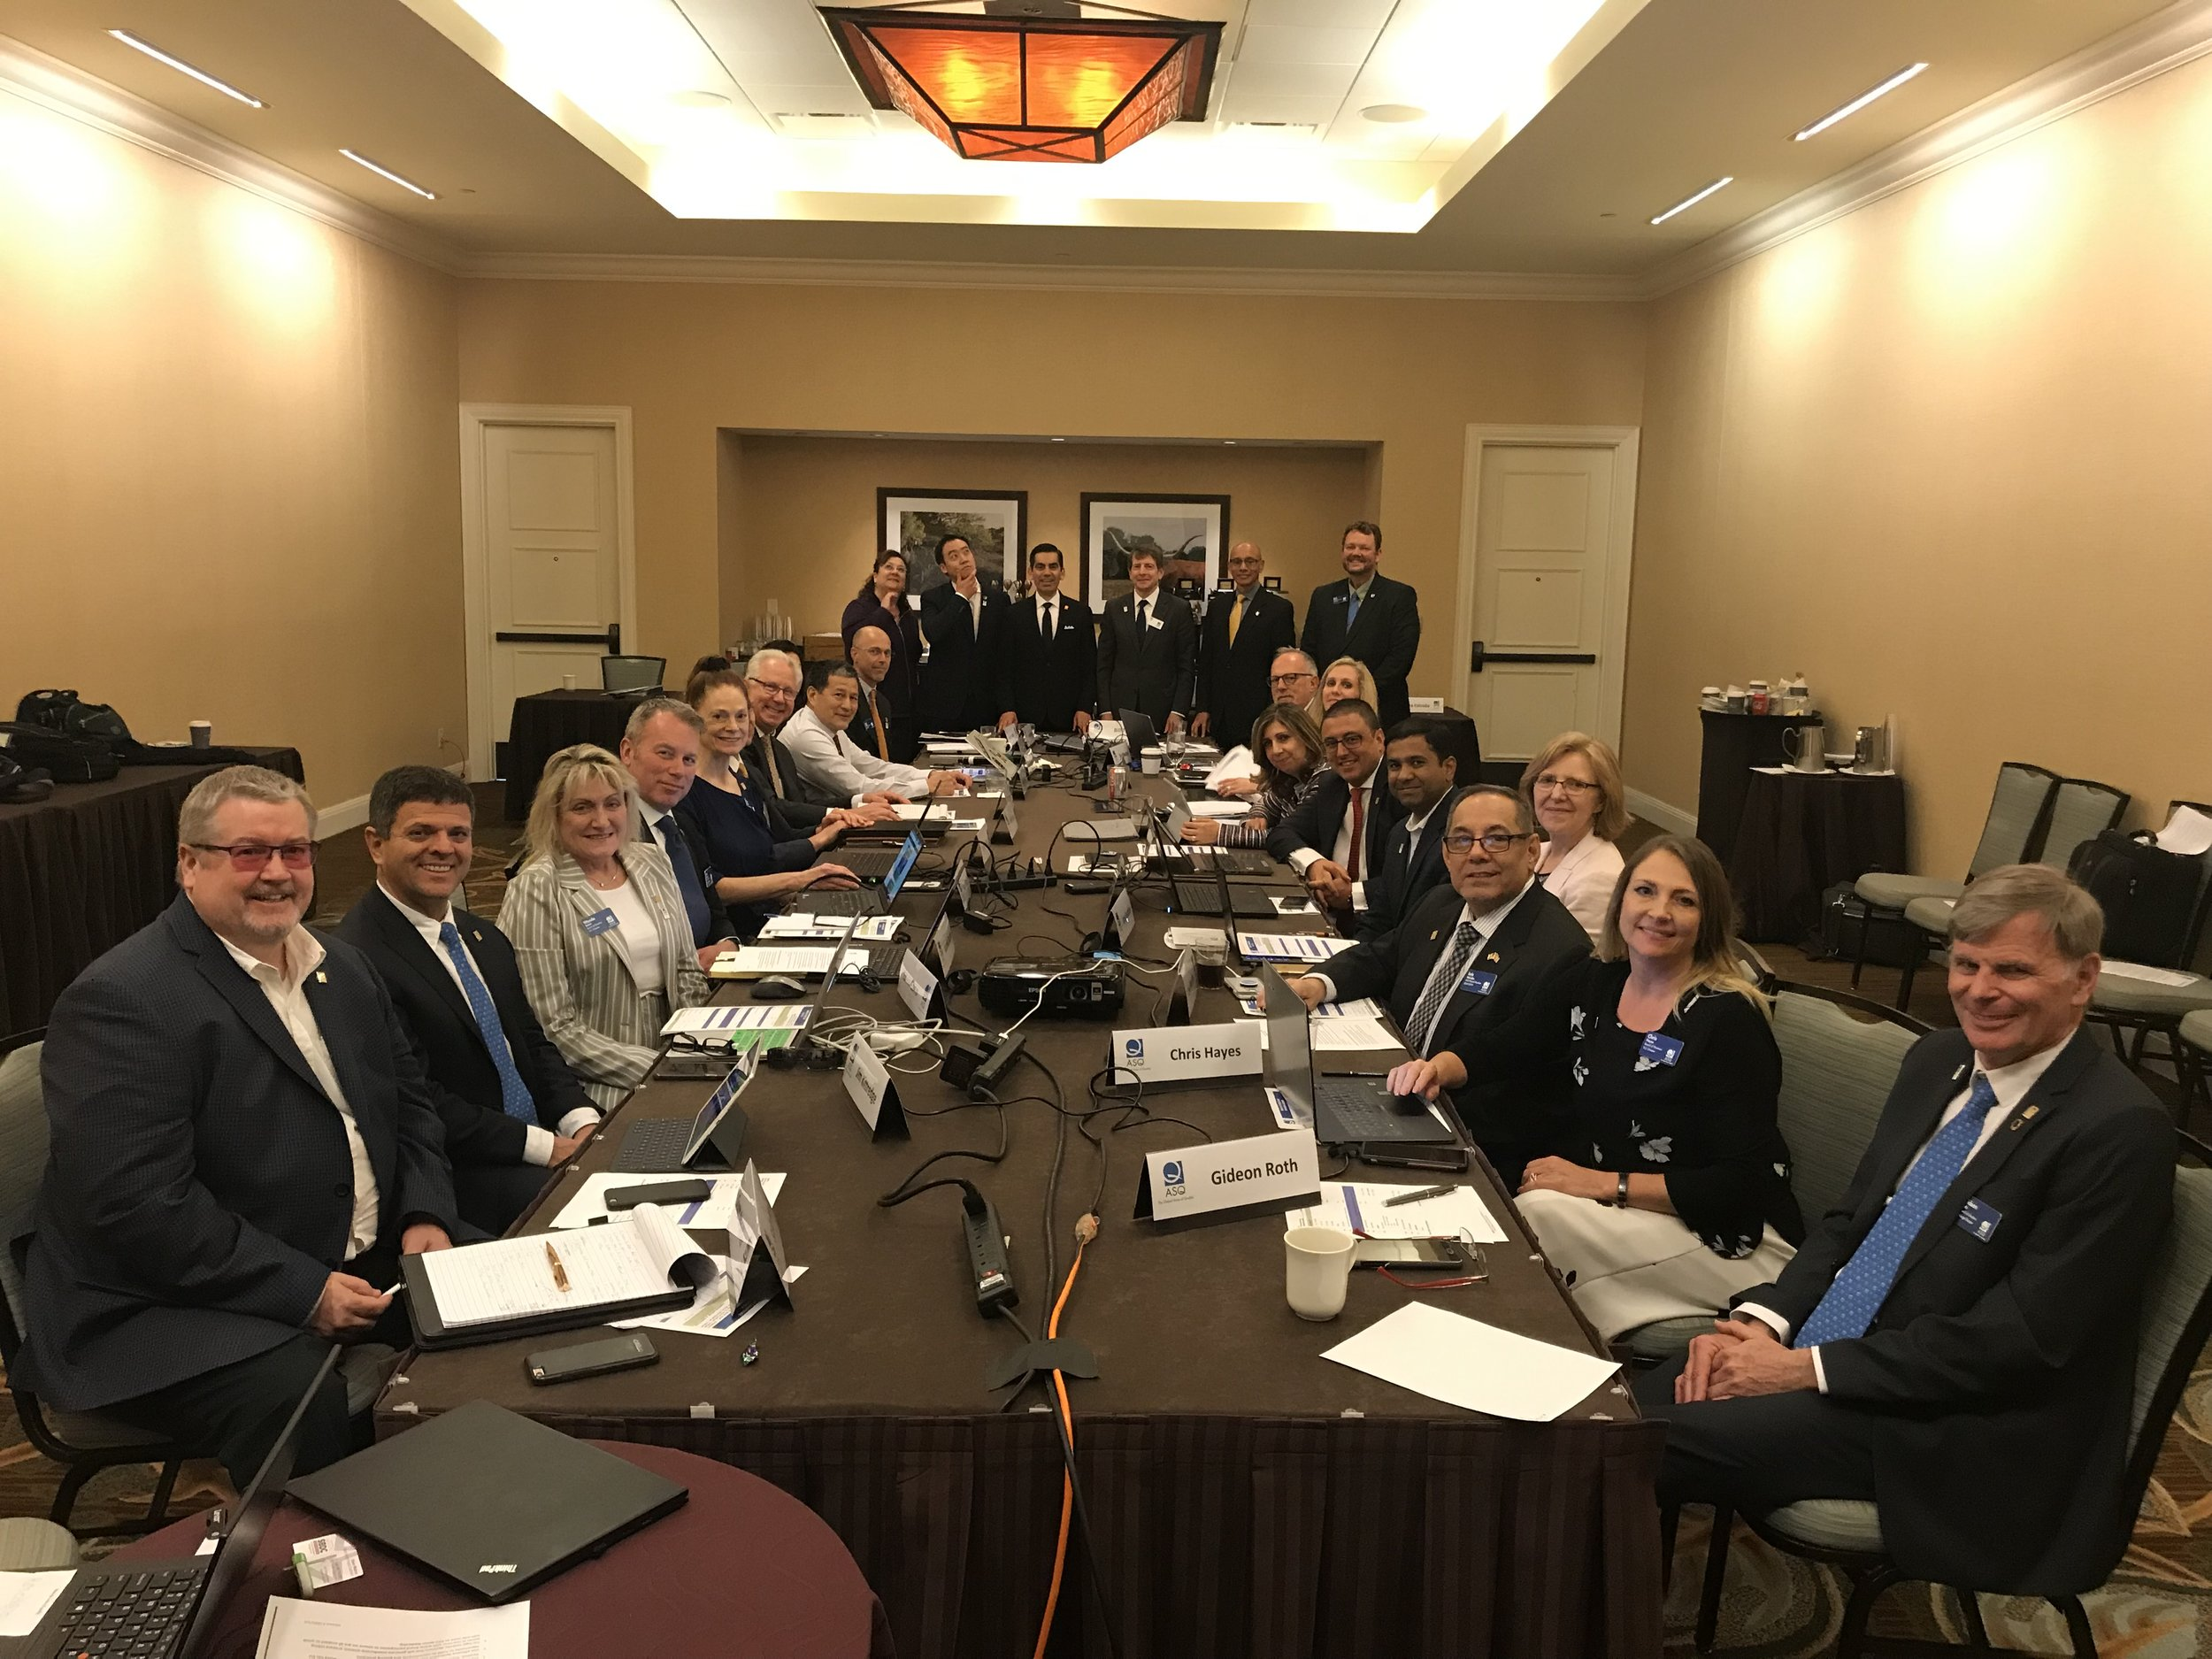 The ASQ Board settling into work mode in one of the Sundance conference rooms inside the Omni Fort Worth.